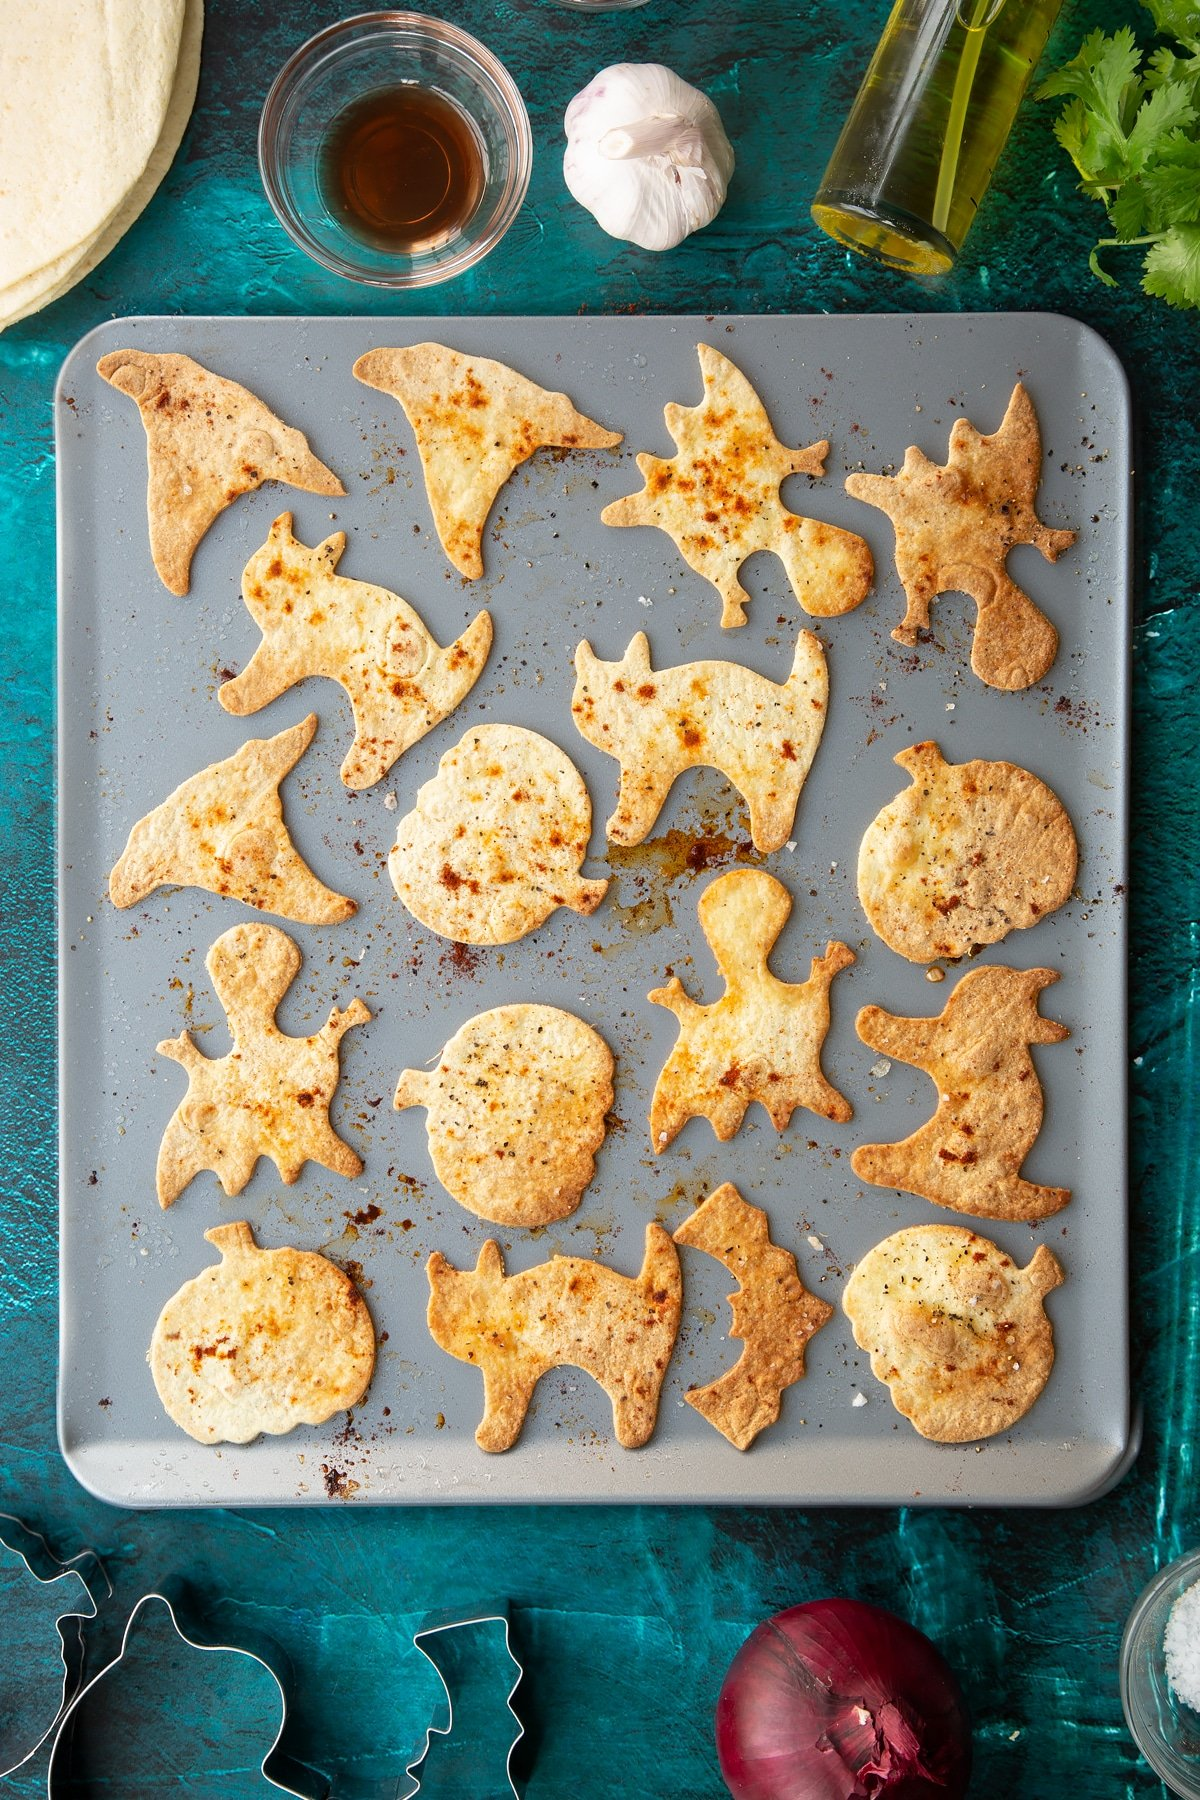 Baked Halloween tortillas on a baking tray, sprinkled with salt, pepper and paprika.